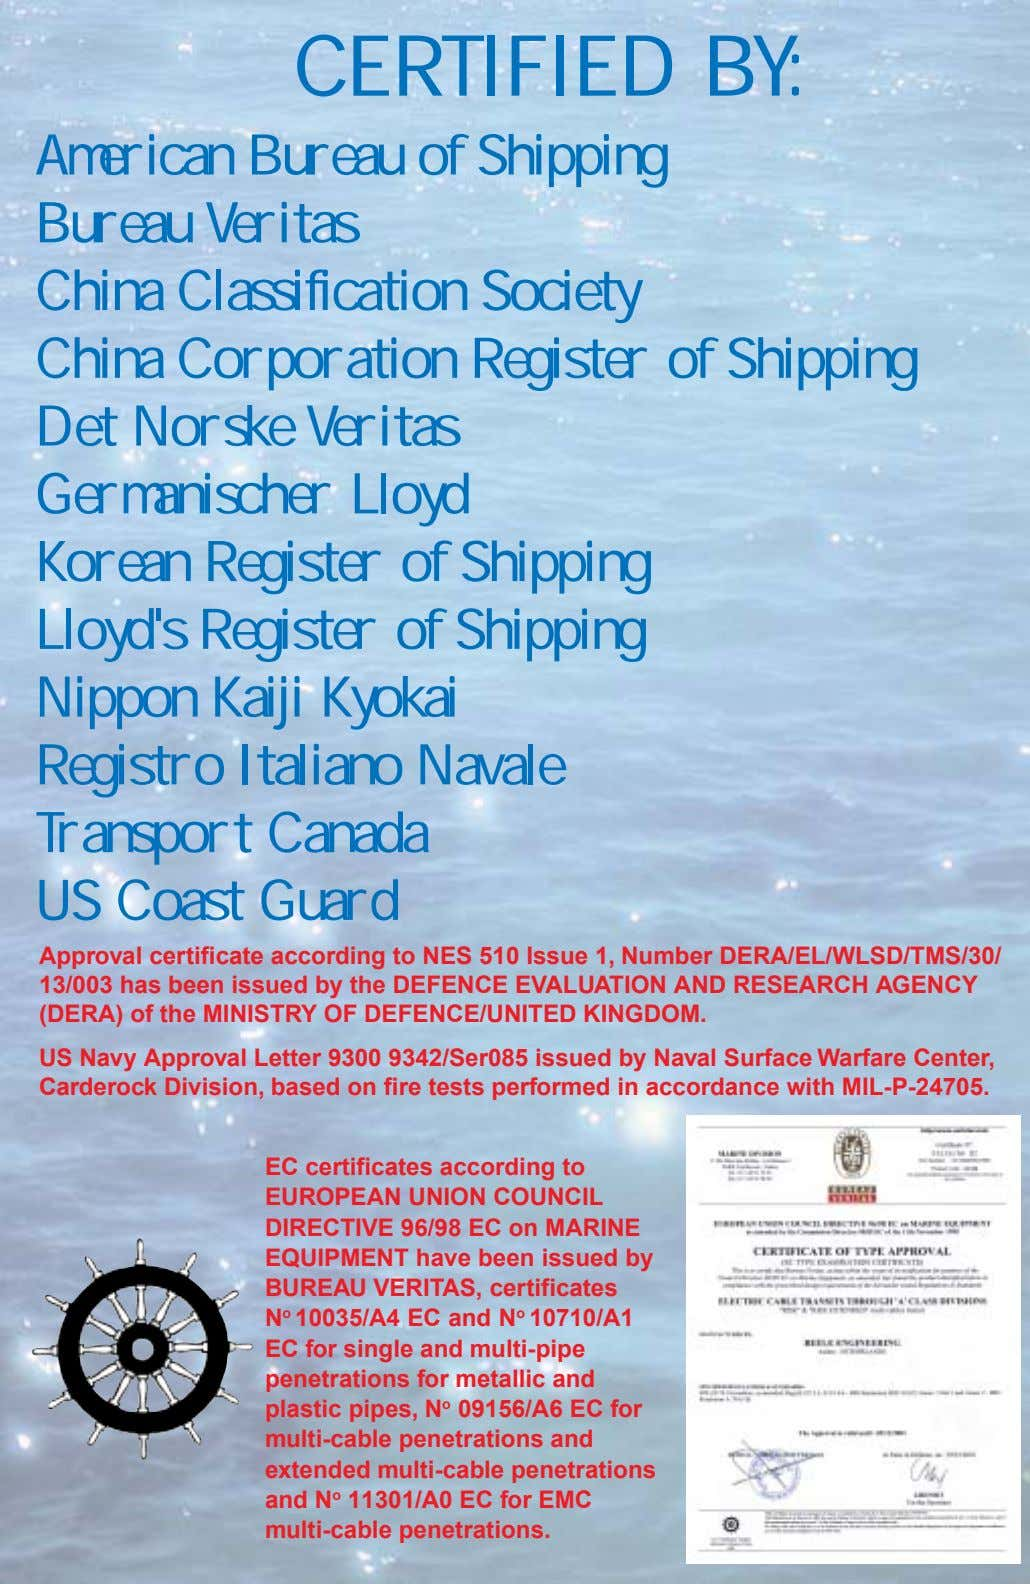 CERTIFIED BY: American Bureau of Shipping Bureau Veritas China Classification Society China Corporation Register of